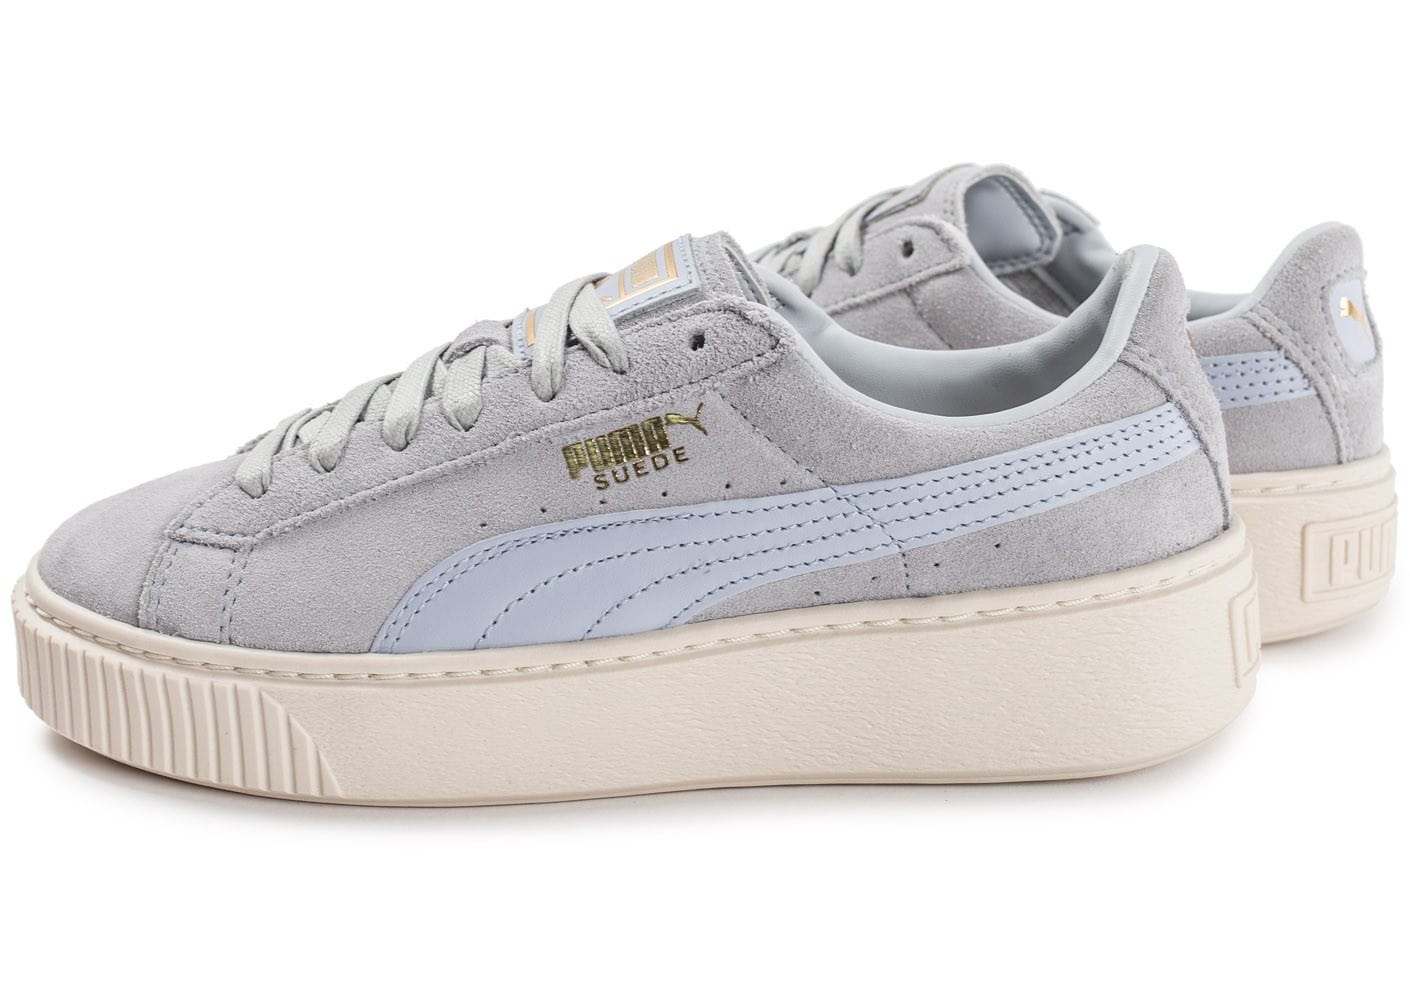 Chaussures Puma Suede blanches Casual homme